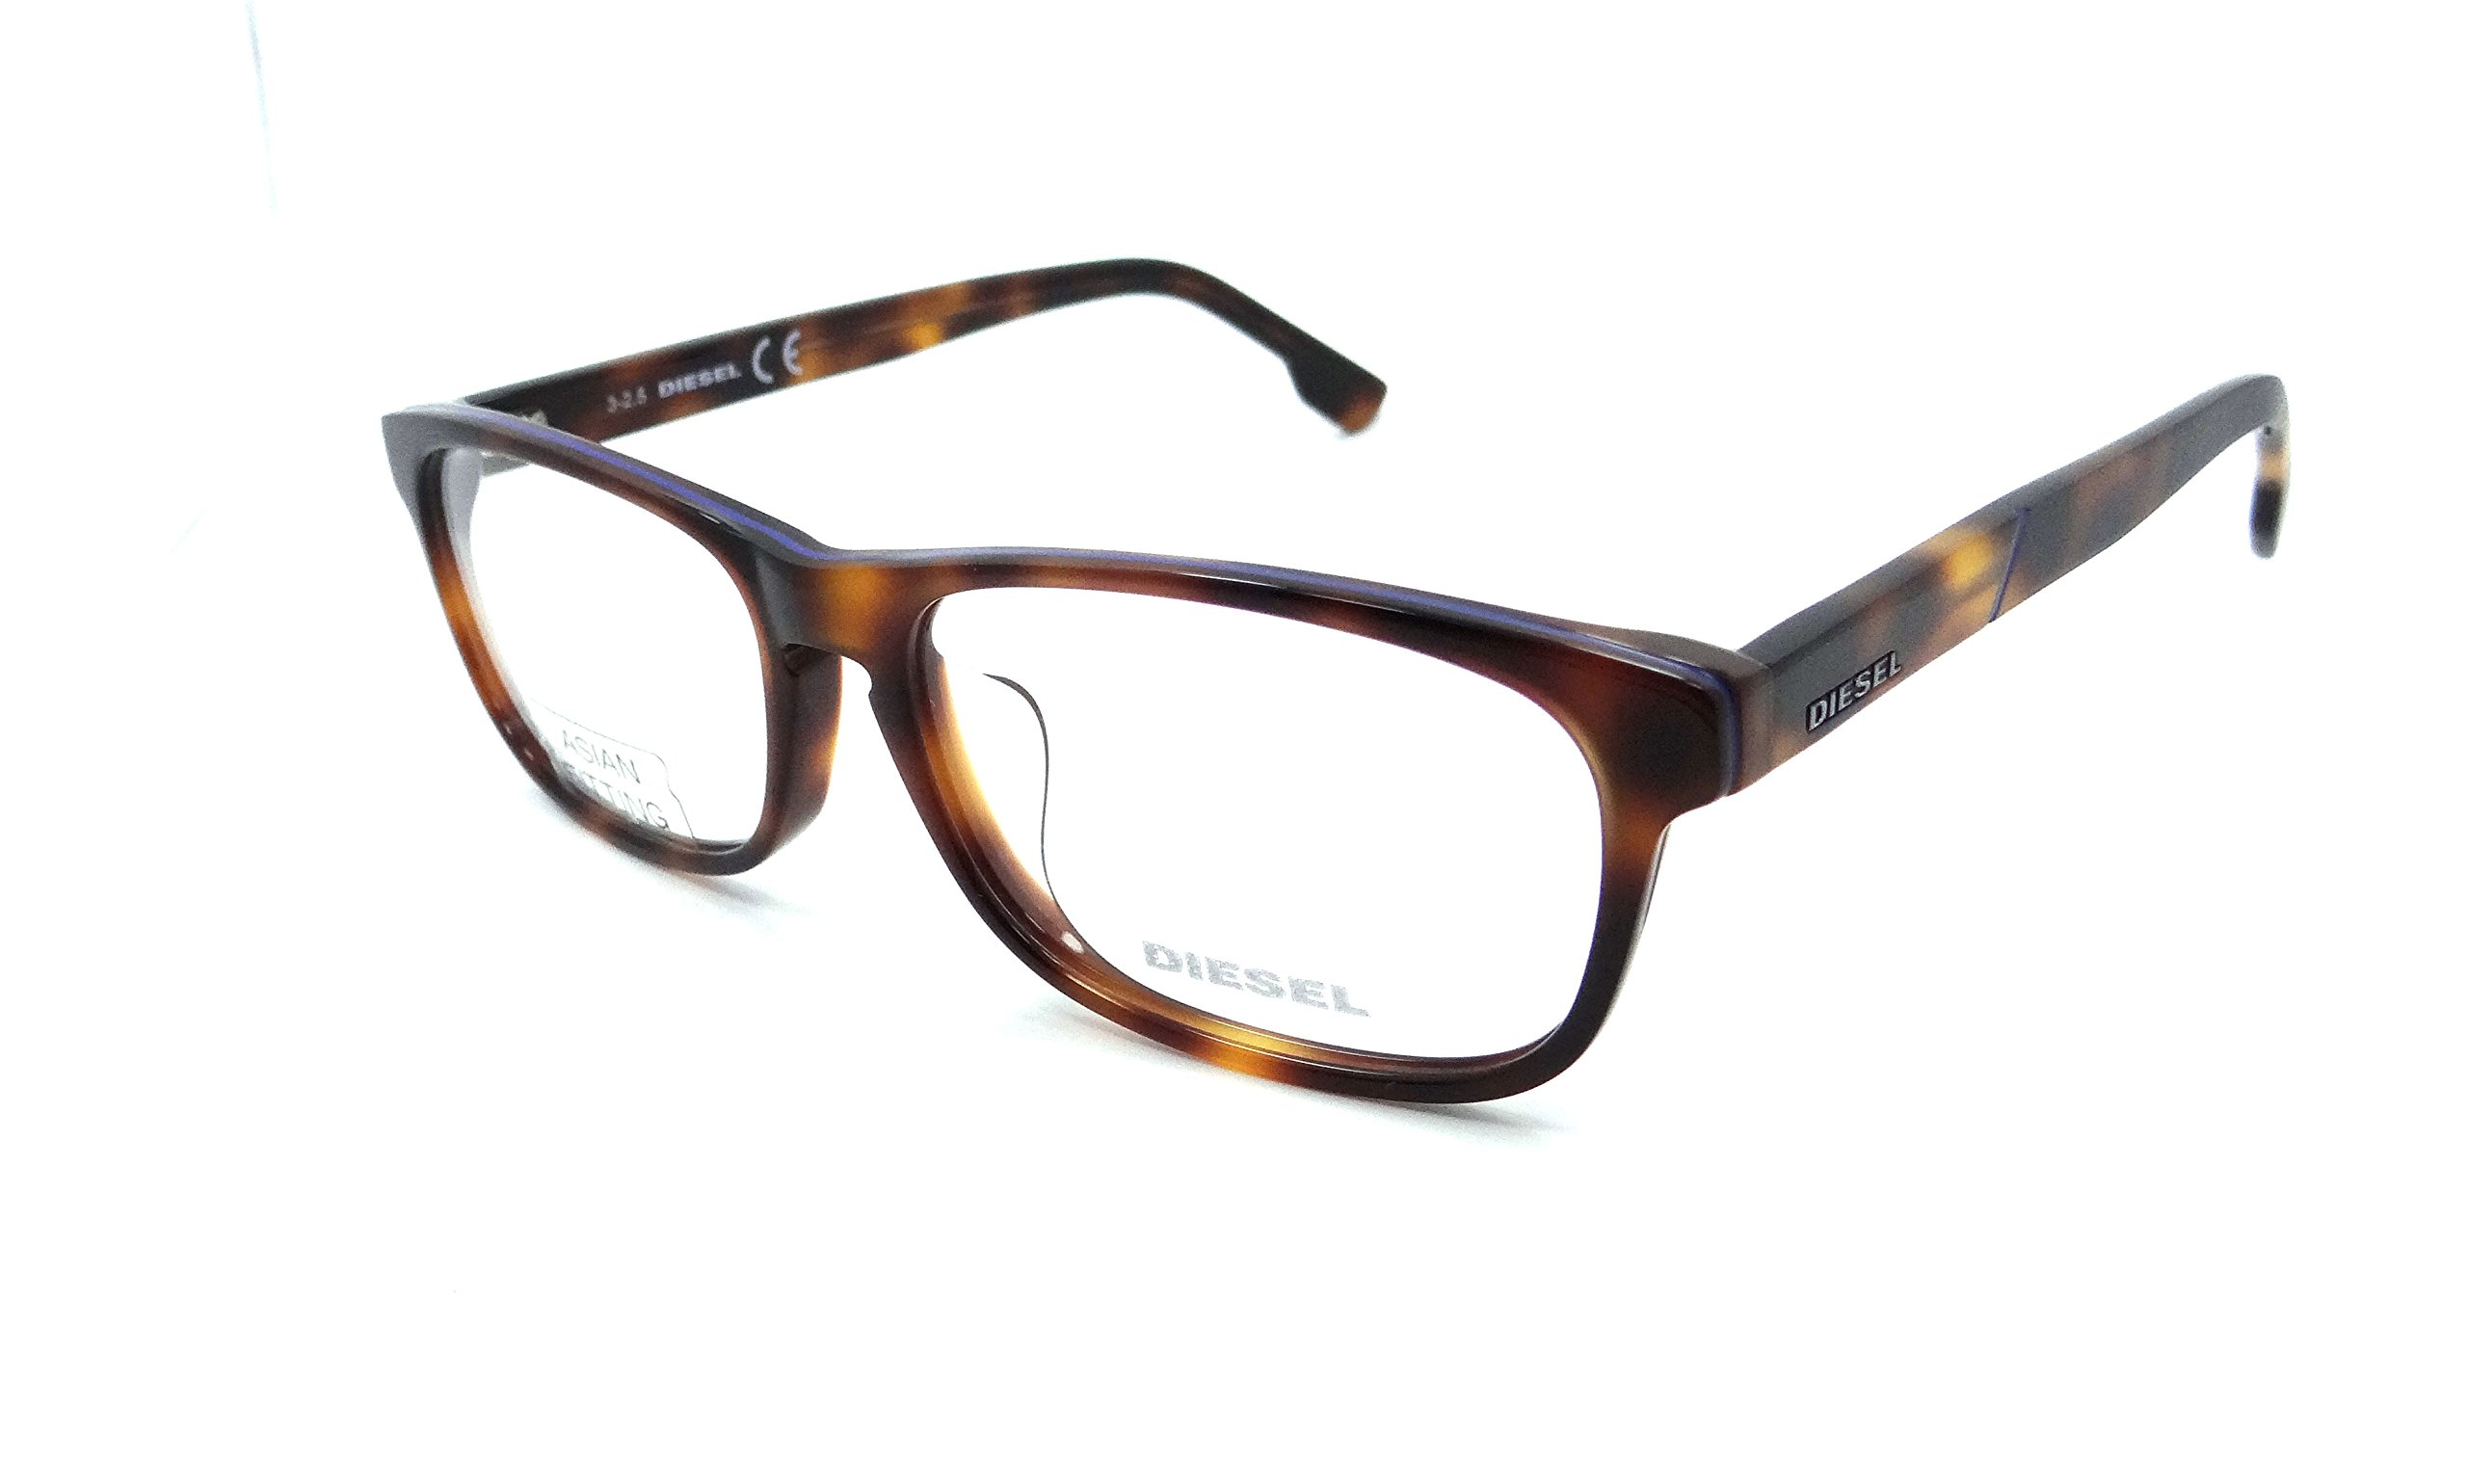 Diesel Rx Eyeglasses Frames DL5197-F 053 56-15-145 Havana Asian Fit